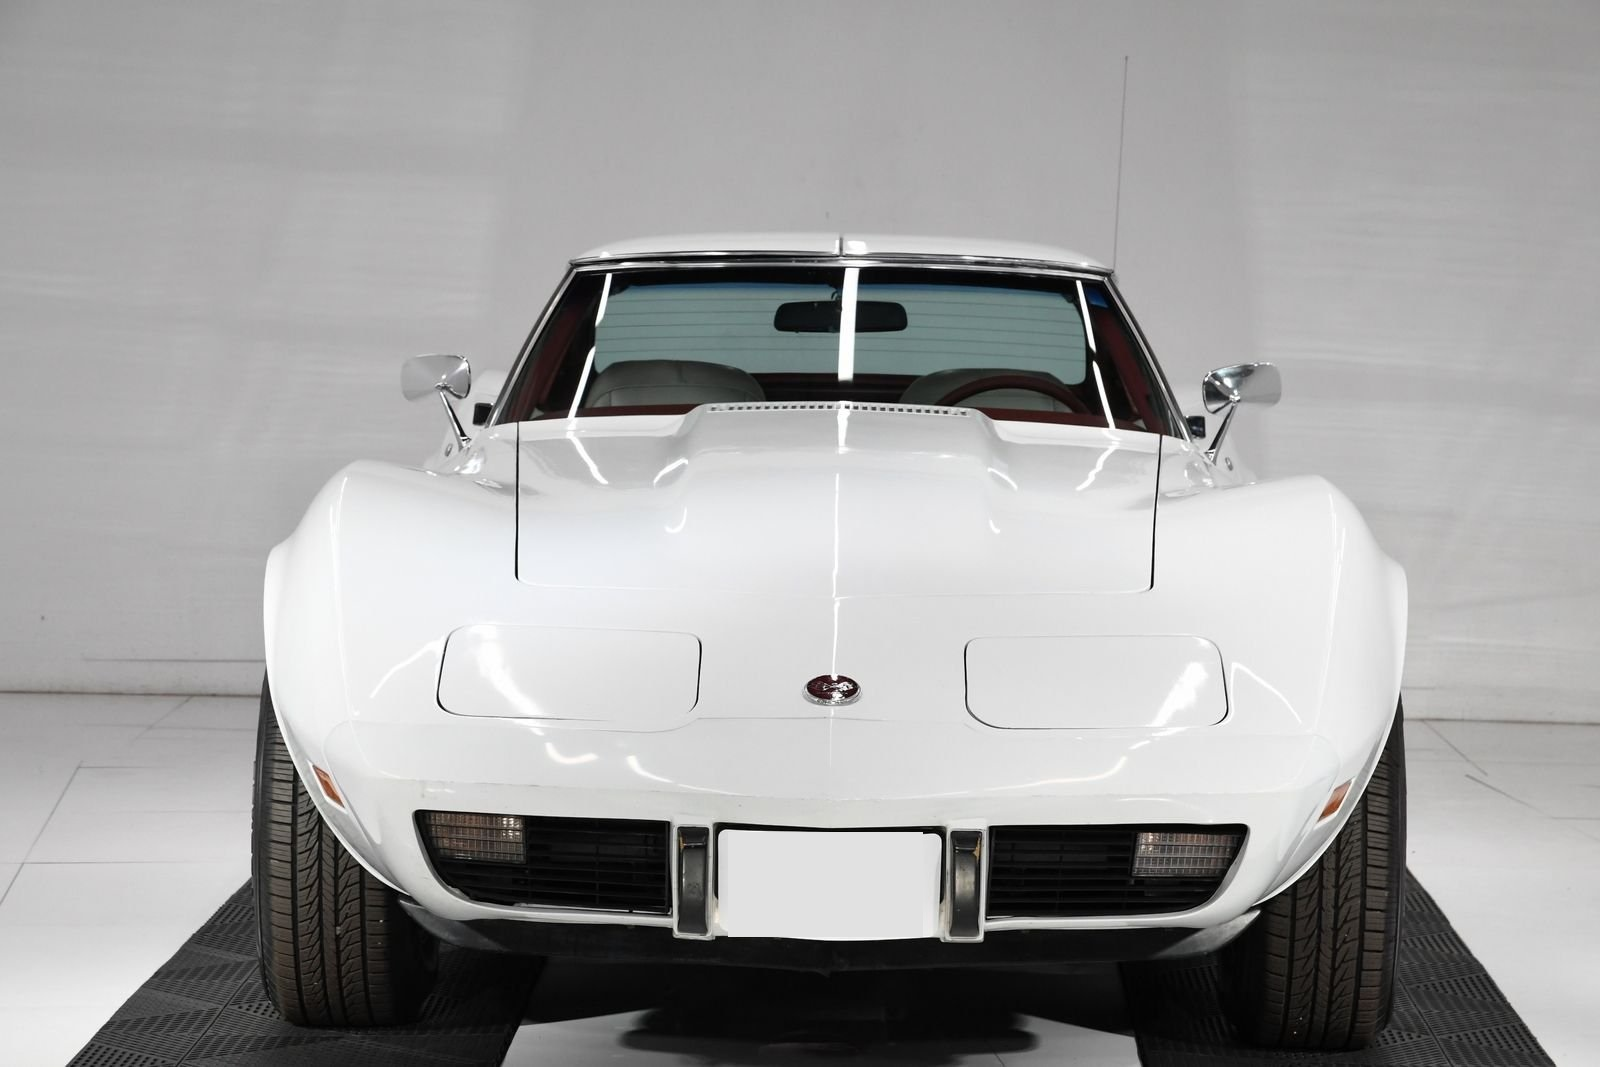 Corvette C3 T-Tops 350 ci V8 L48 automatique 197626 647€